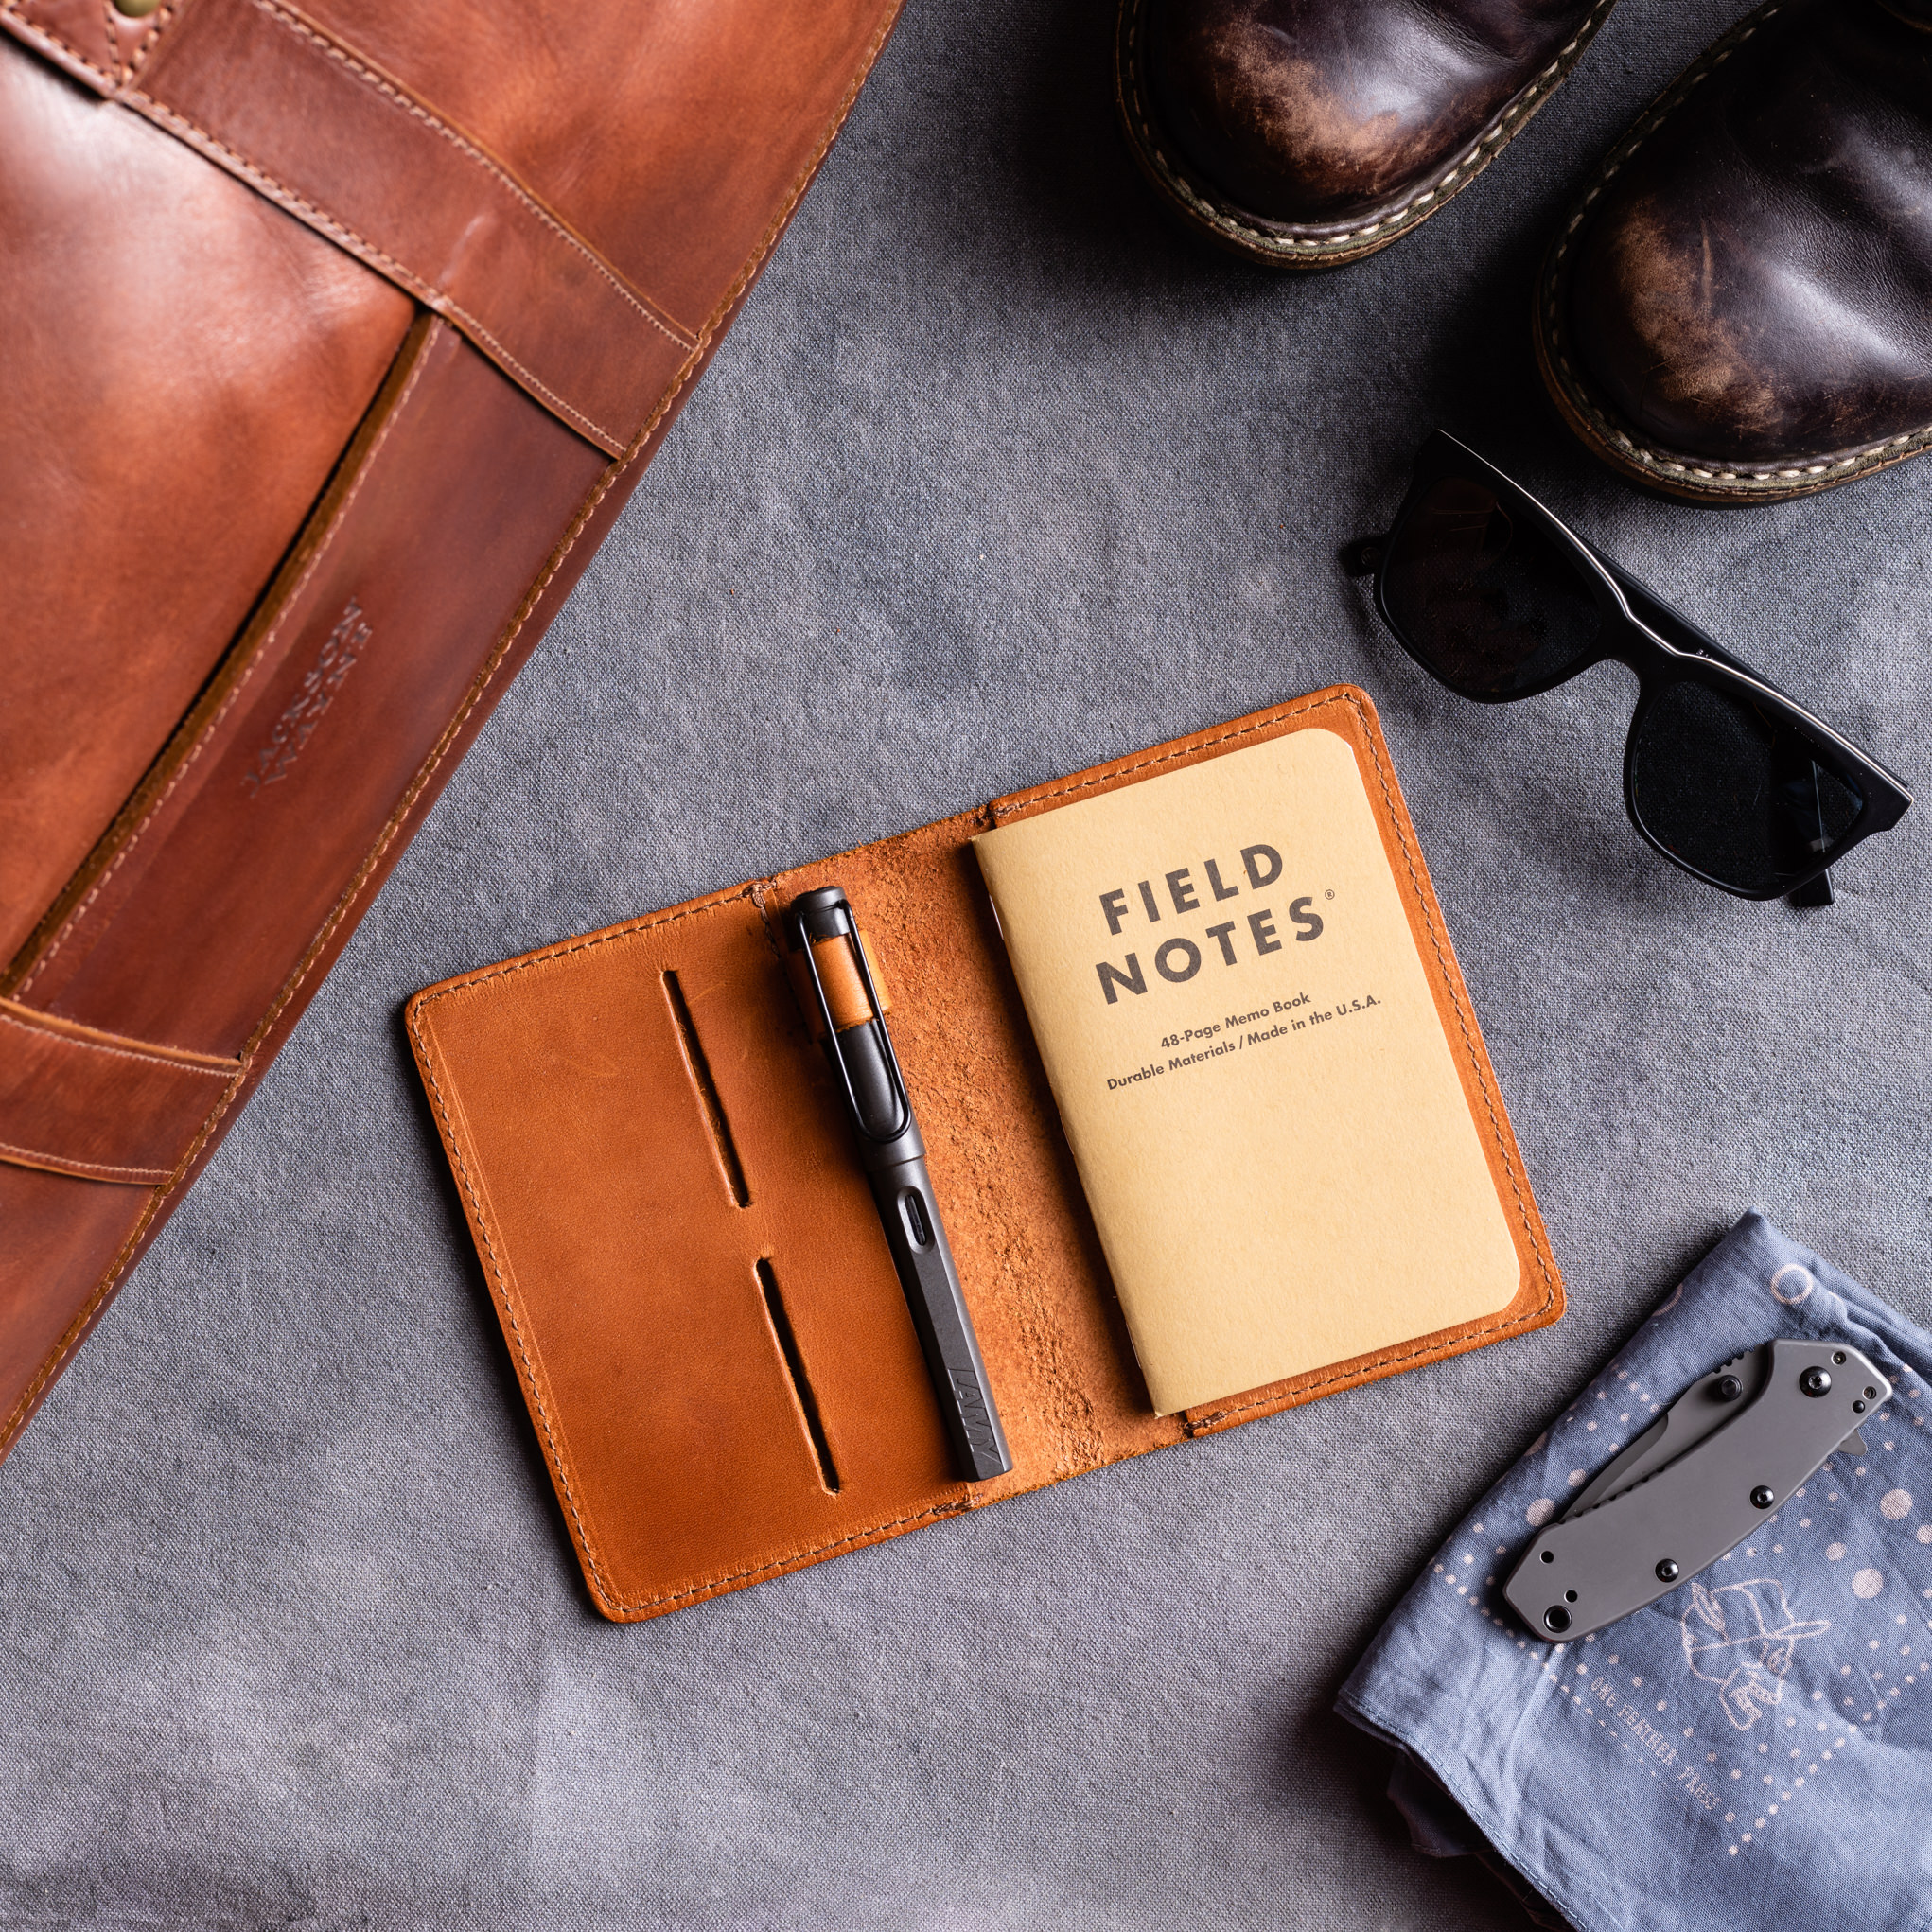 Layflat product photography for a leather goods company